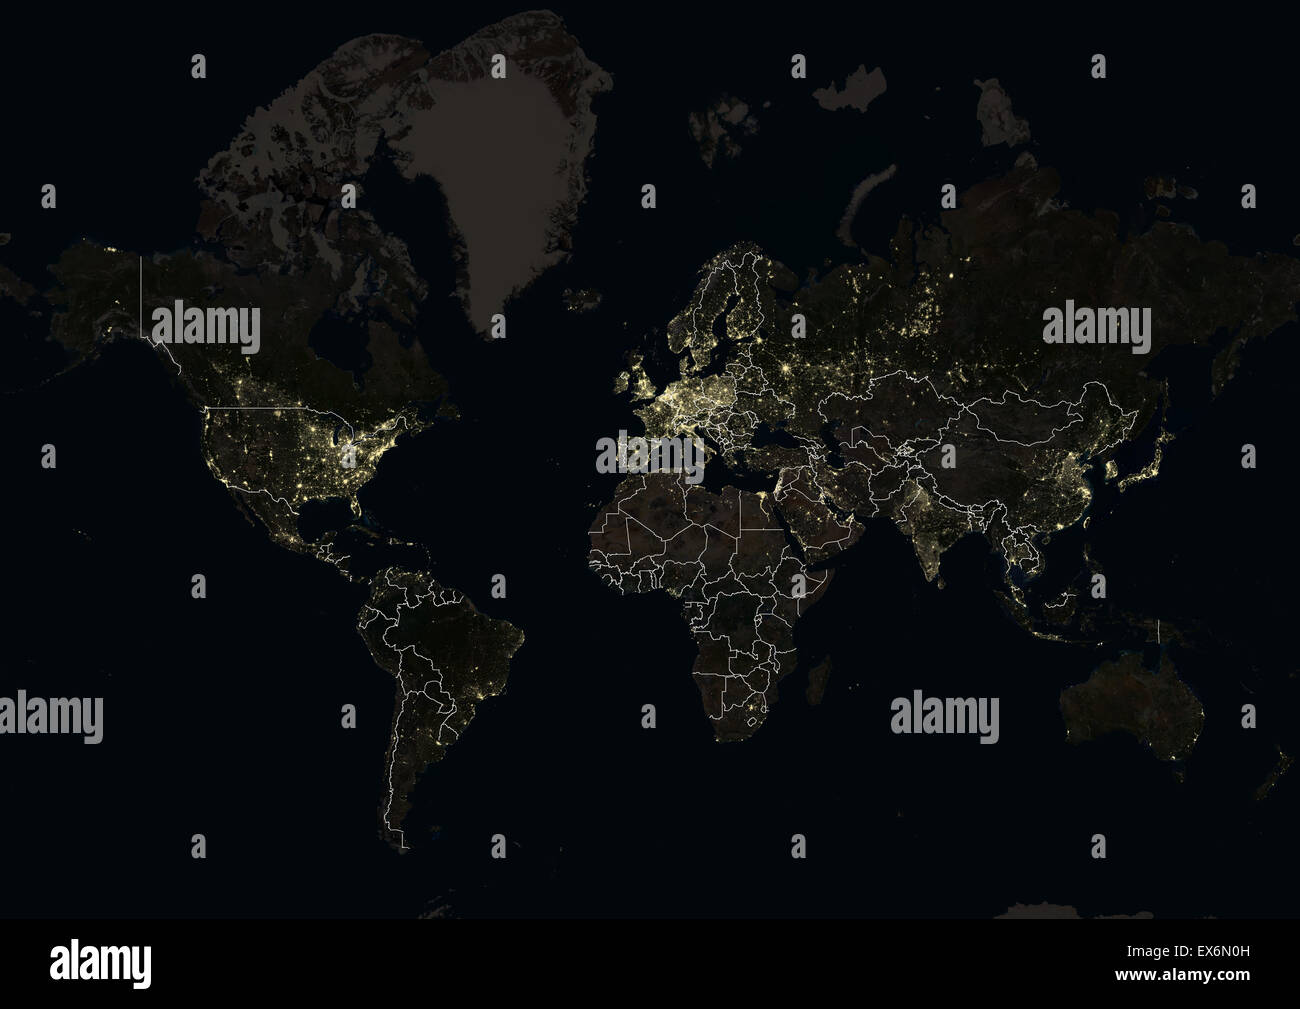 World at night in 2012 showing a world map in mercator projection world at night in 2012 showing a world map in mercator projection this satellite image with country borders shows urban and gumiabroncs Gallery